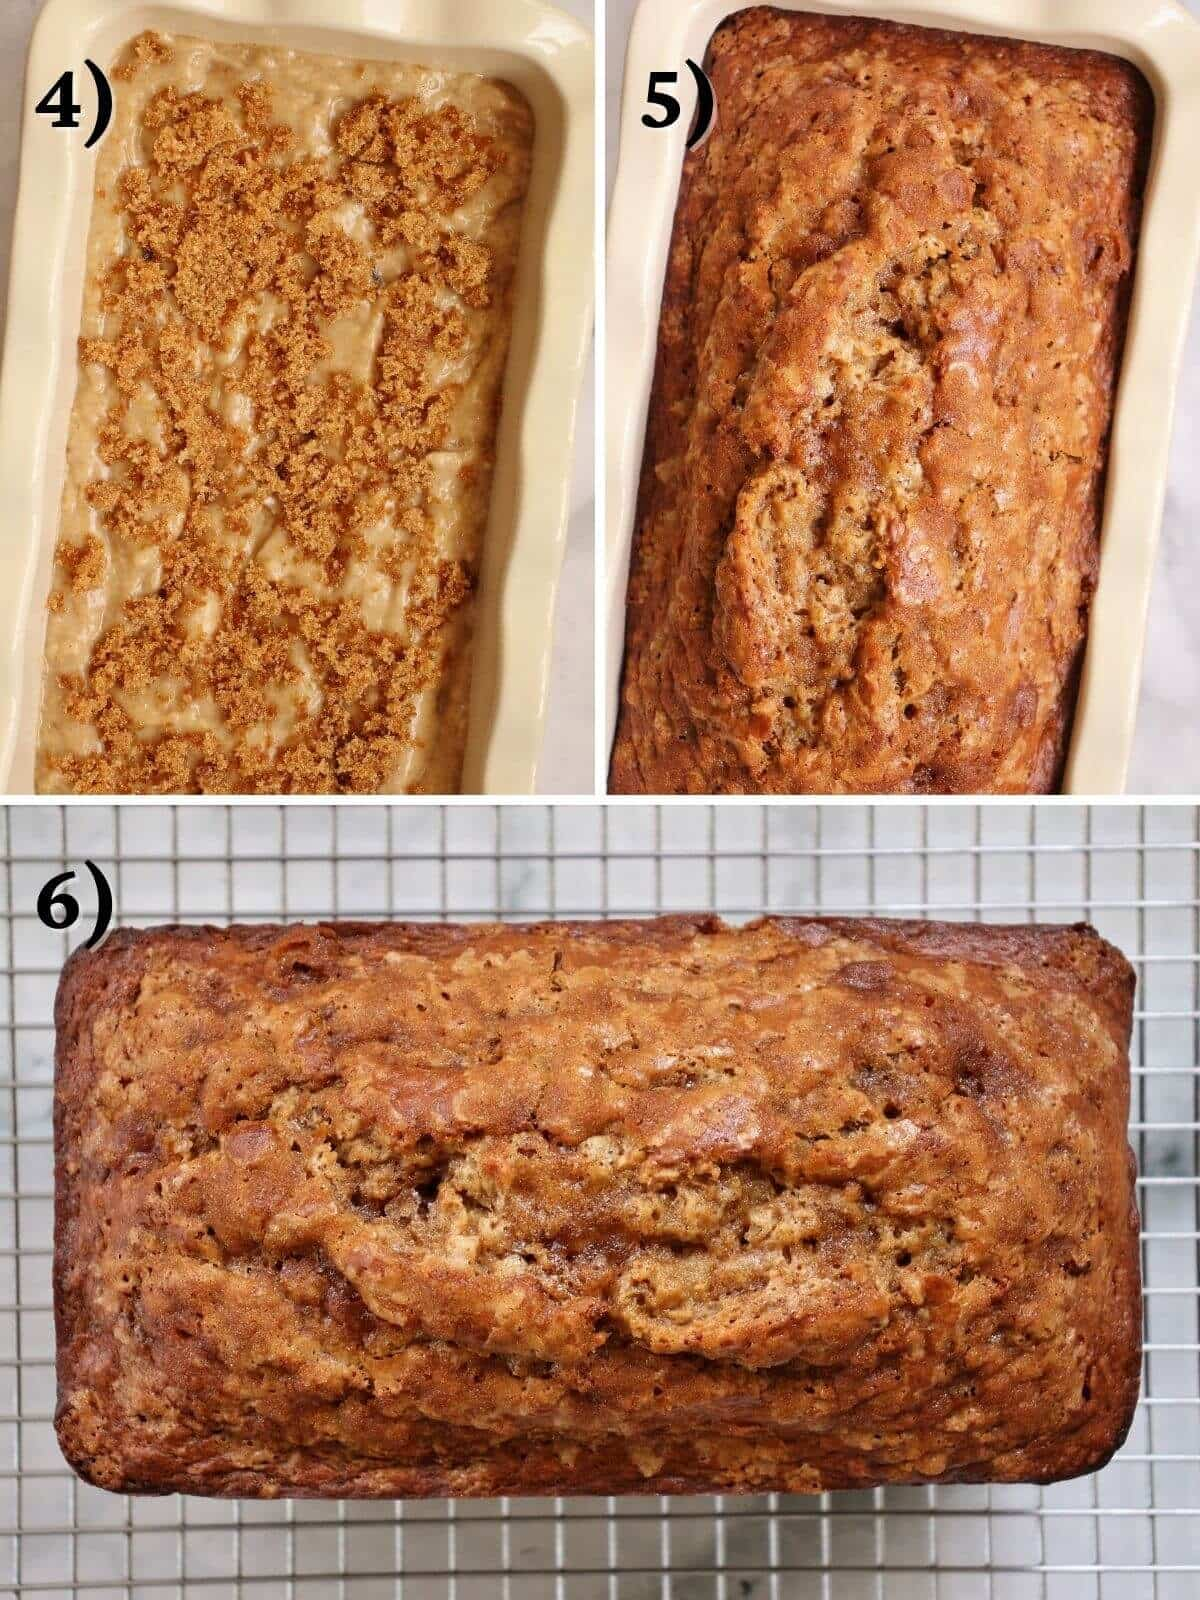 A loaf of banana bread before and after baking.